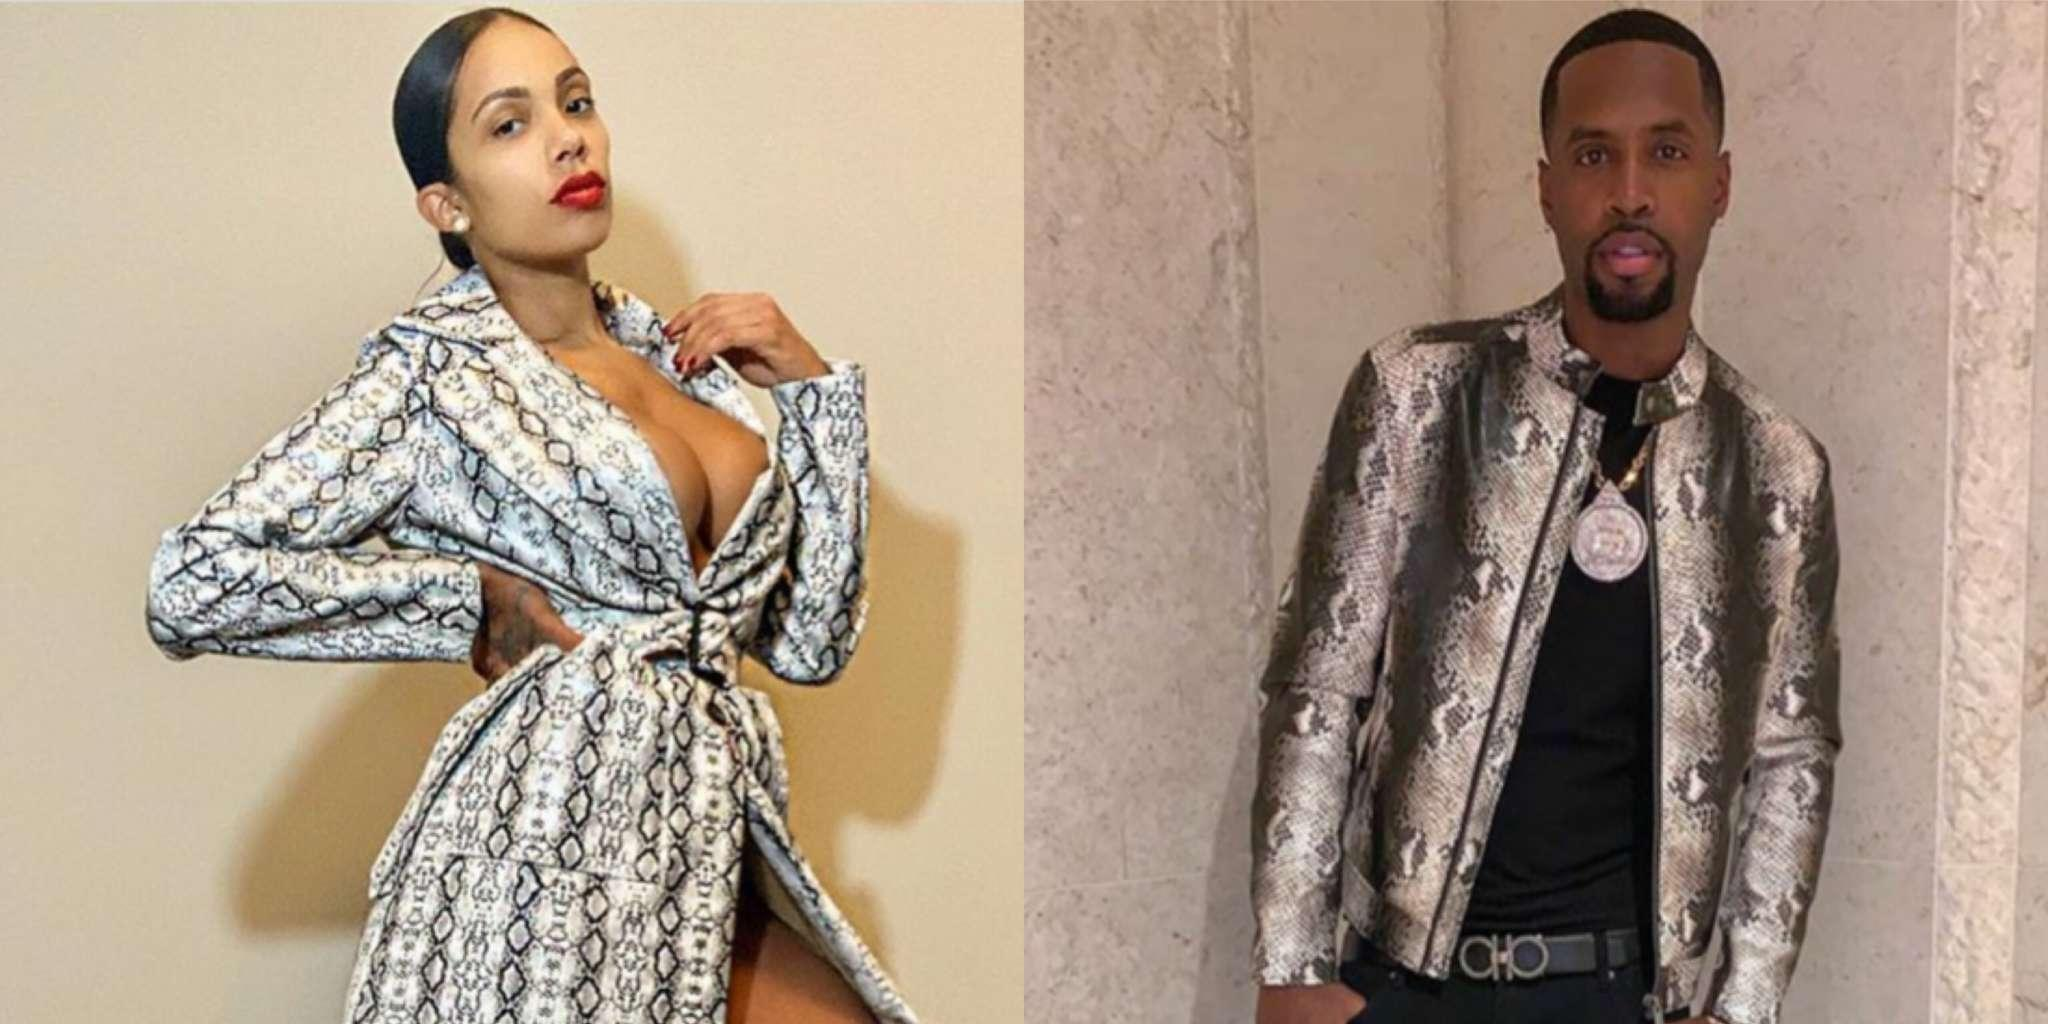 Erica Mena Shares Emotional Post With Throwback Videos With Safaree